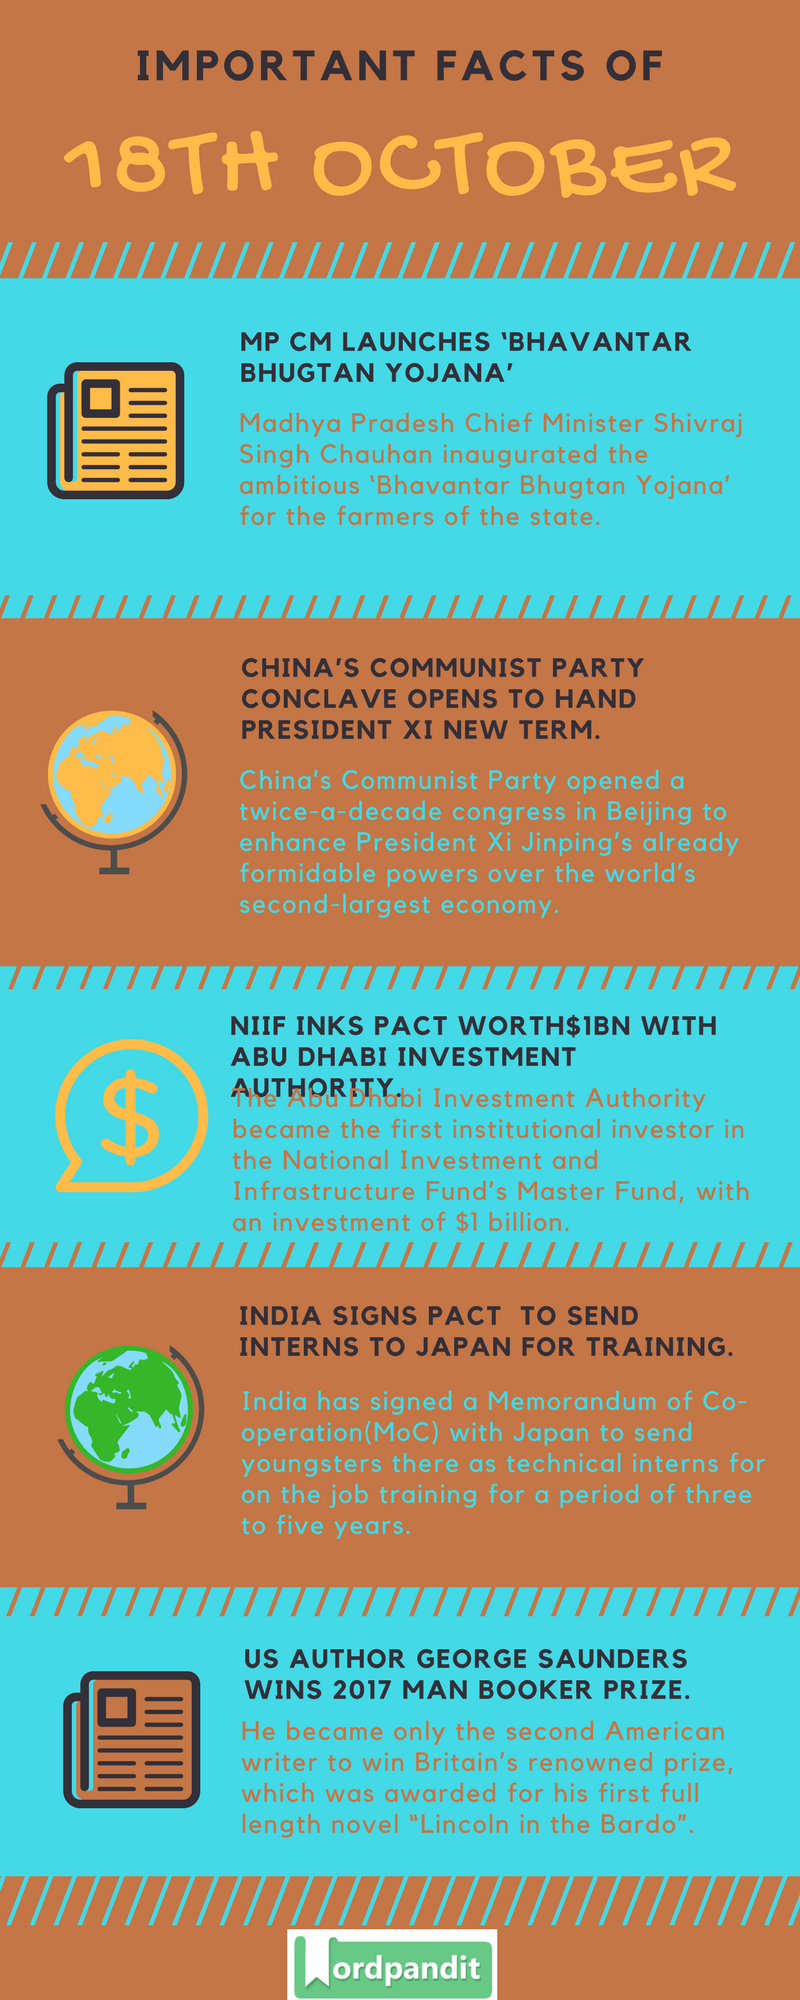 Daily-Current-Affairs-18-october-2017-Current-Affairs-Quiz-october-18-2017-Current-Affairs-Infographic